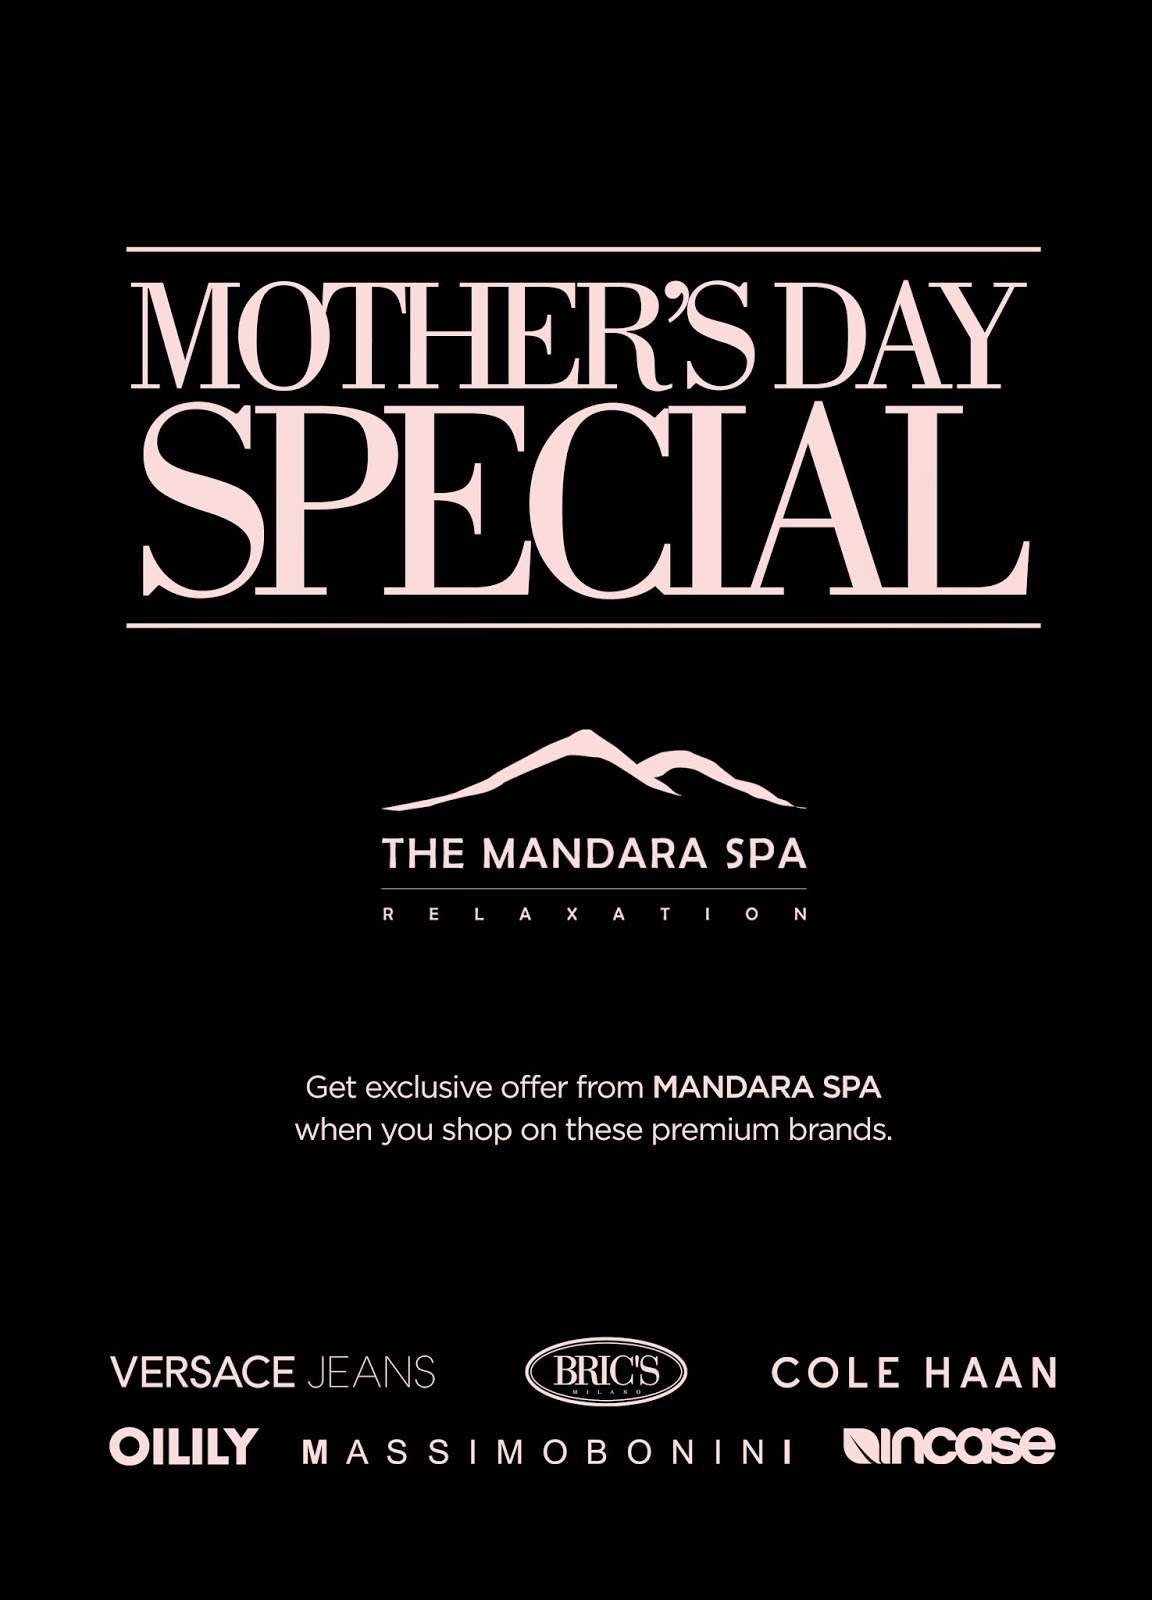 0df22a20d26 Shopping for a gift for your mom? These premium brands will be a great gift  on Mother's Day! Get exclusive offer from Mandara Spa when you shop on  these ...